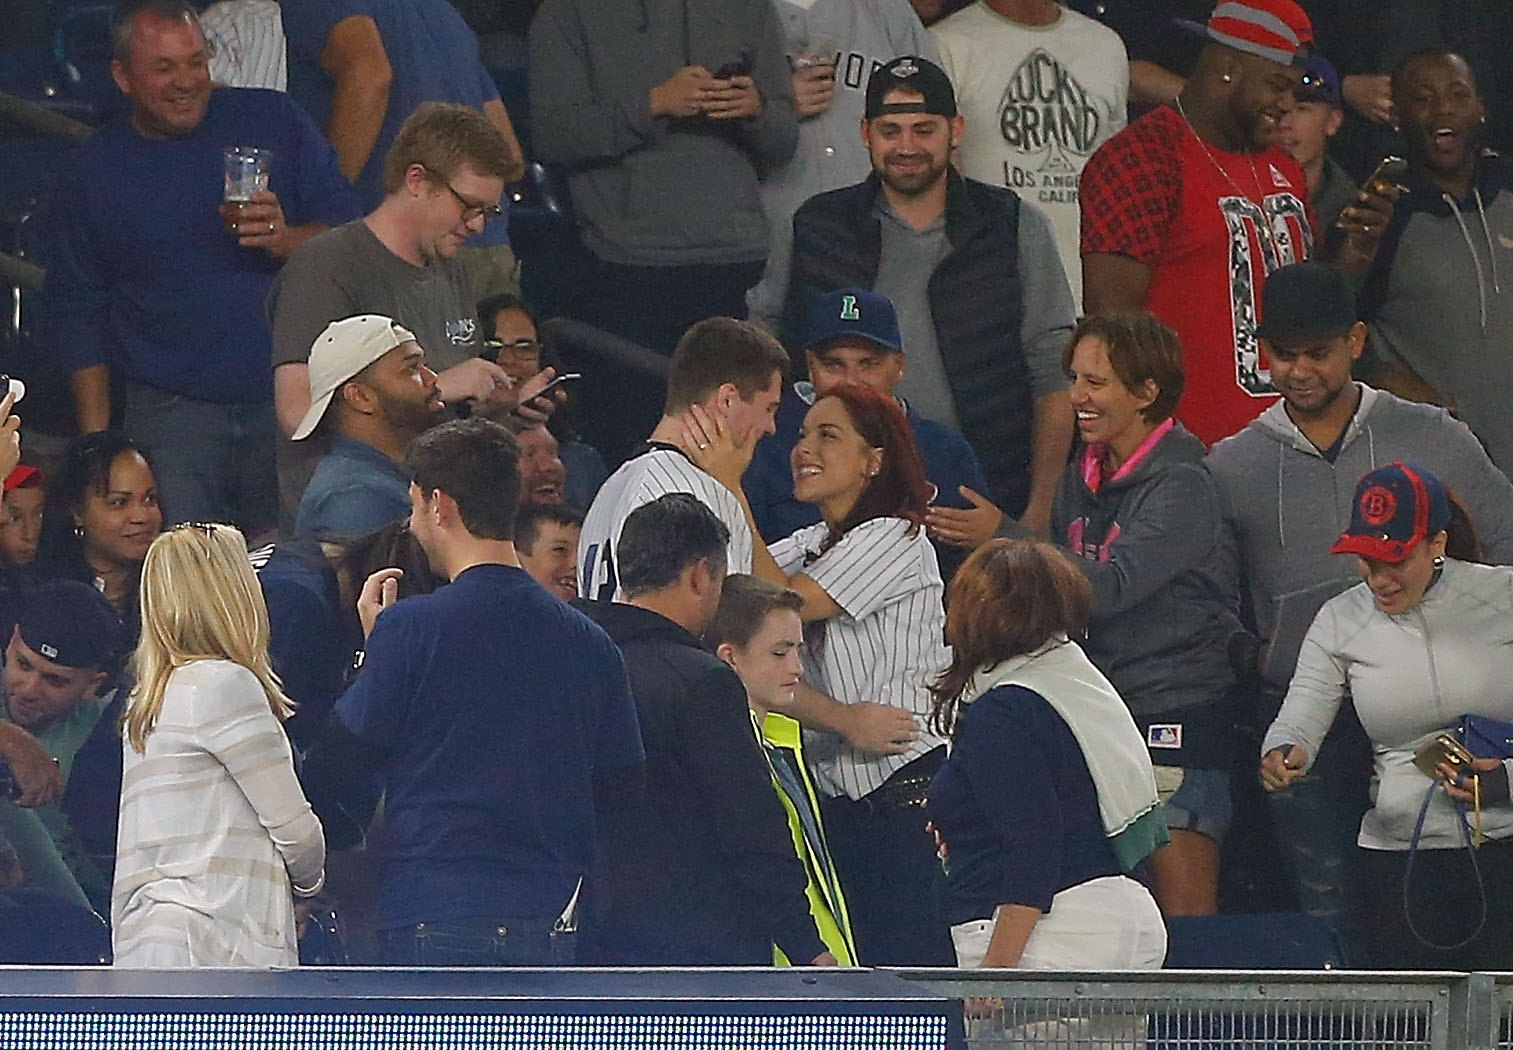 NEW YORK, NY - SEPTEMBER 27:  A couple get engaged in the upper deck during a game between the New York Yankees and the Boston Red Sox at Yankee Stadium on September 27, 2016 in the Bronx borough of New York City.  (Photo by Jim McIsaac/Getty Images)